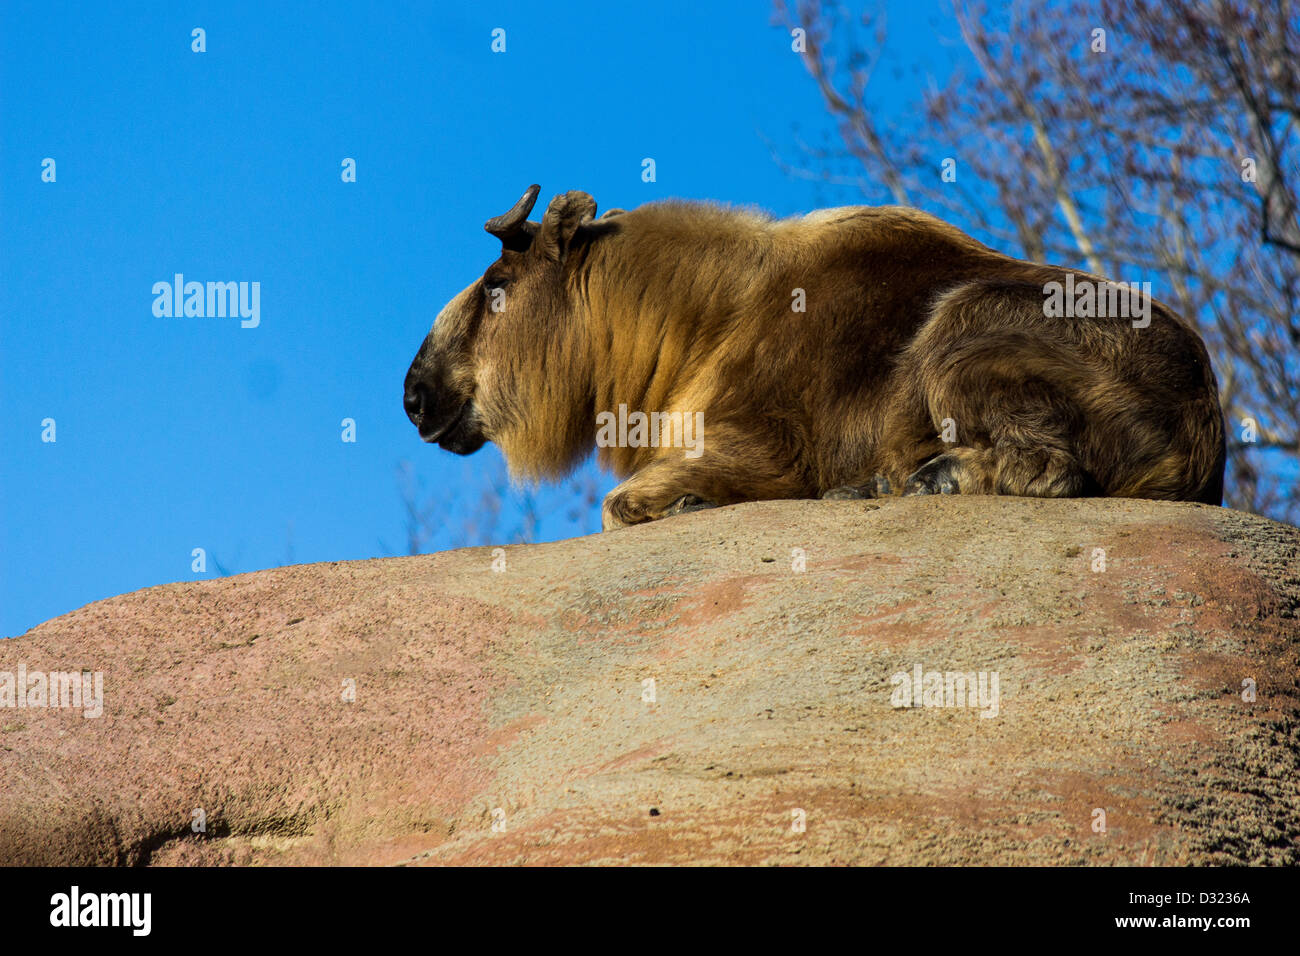 A mountain goat resting on top of a rock - Stock Image